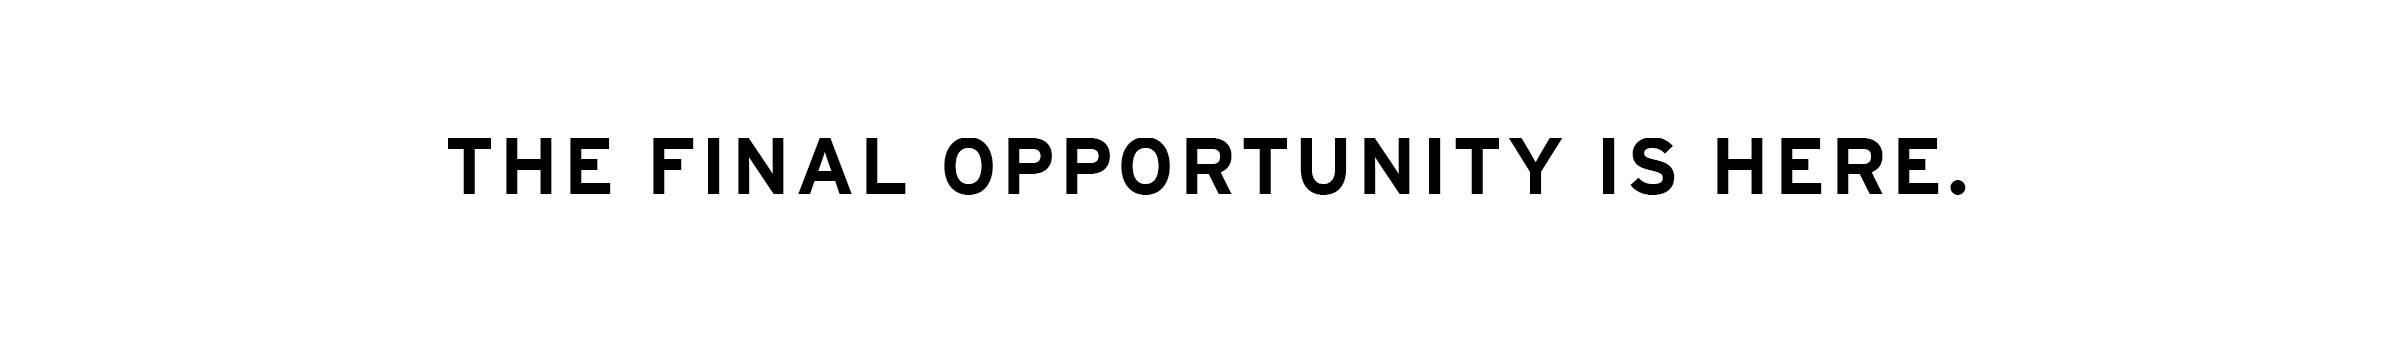 YOUR NEXT OPPORTUNITY IS HERE.